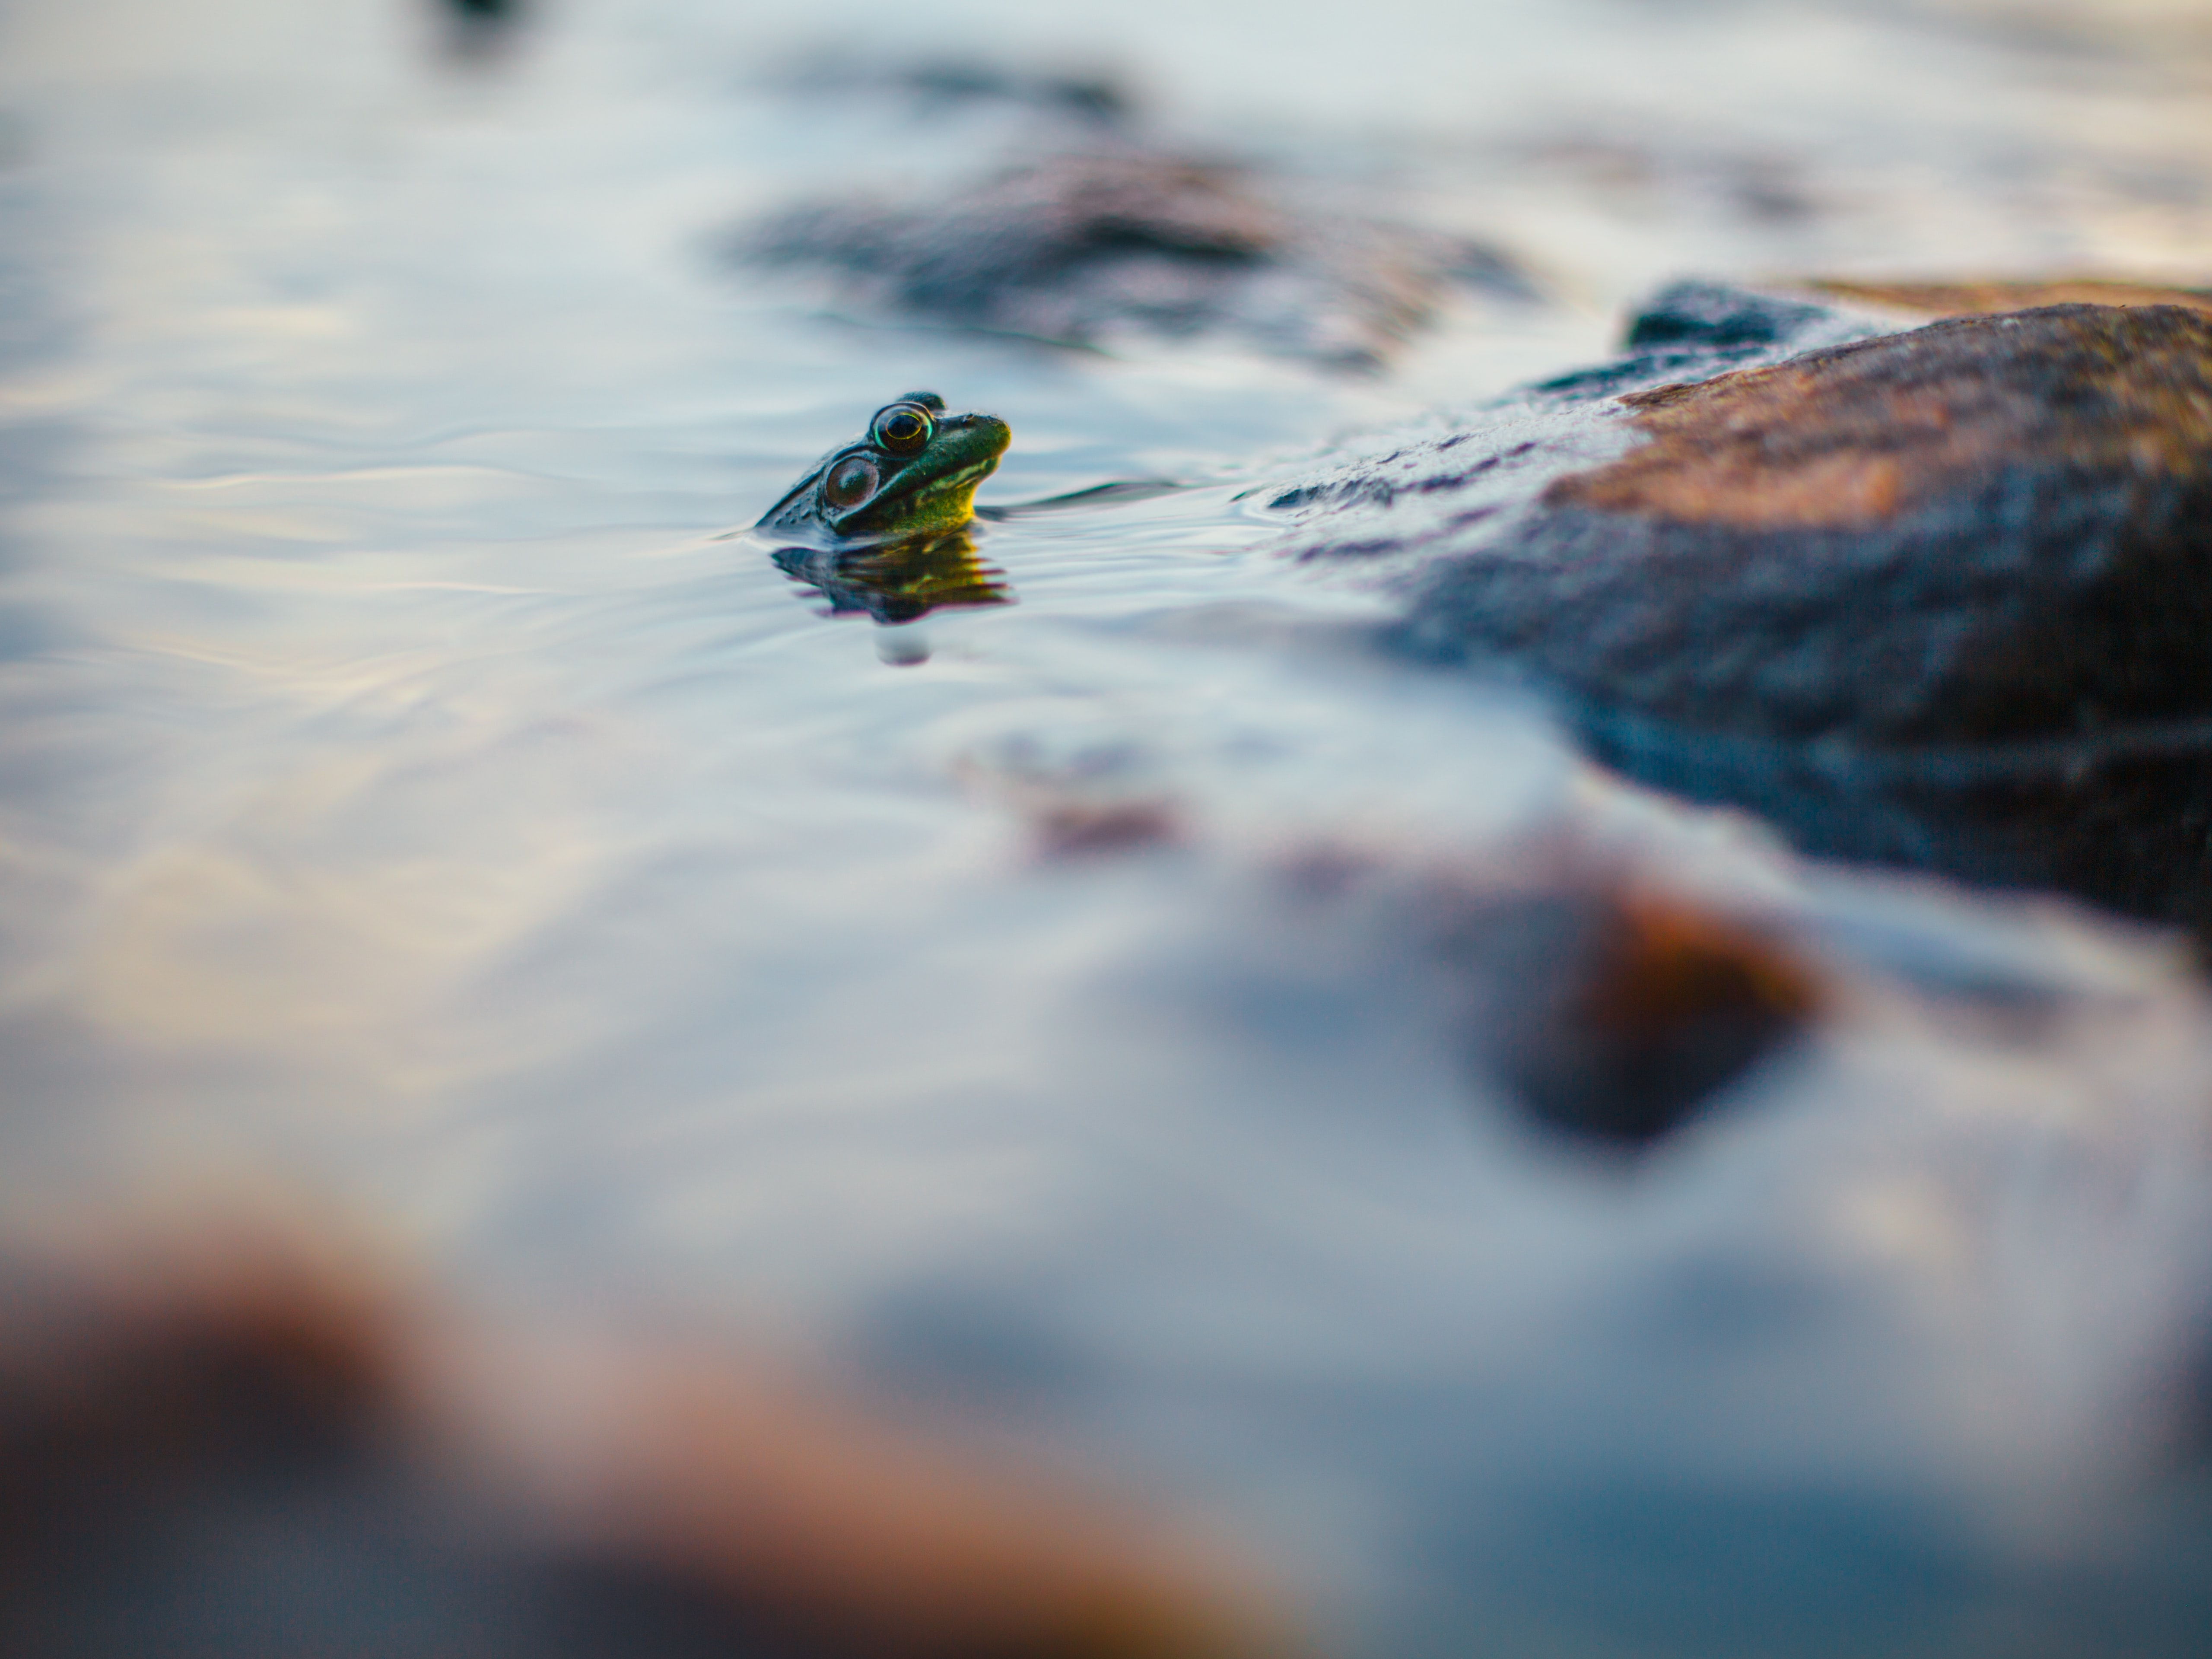 half immersed gray frog on water surrounded by rocks